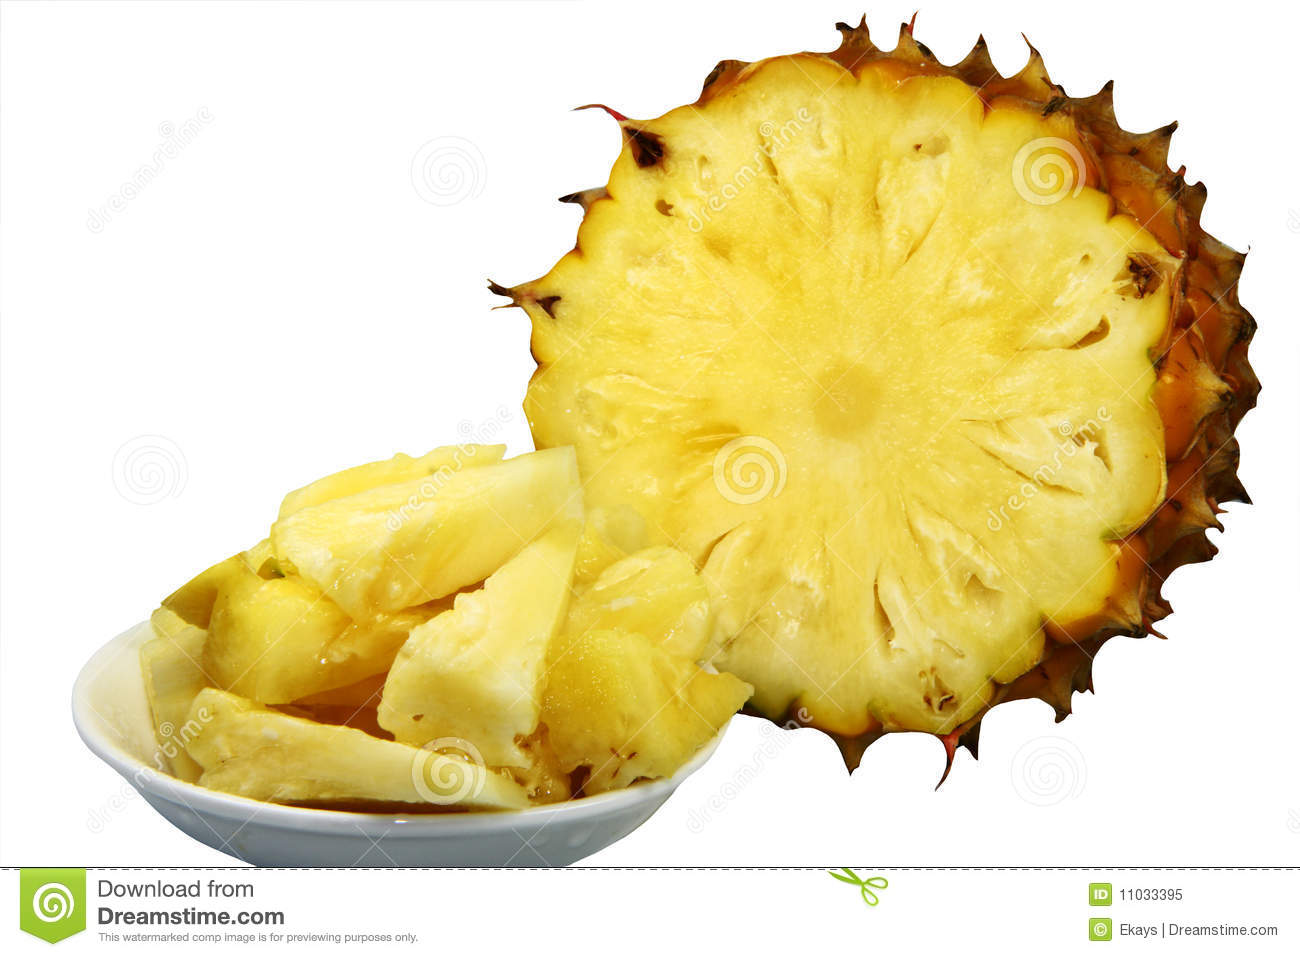 Pineapple Pieces Royalty Free Stock Photo - Image: 11033395